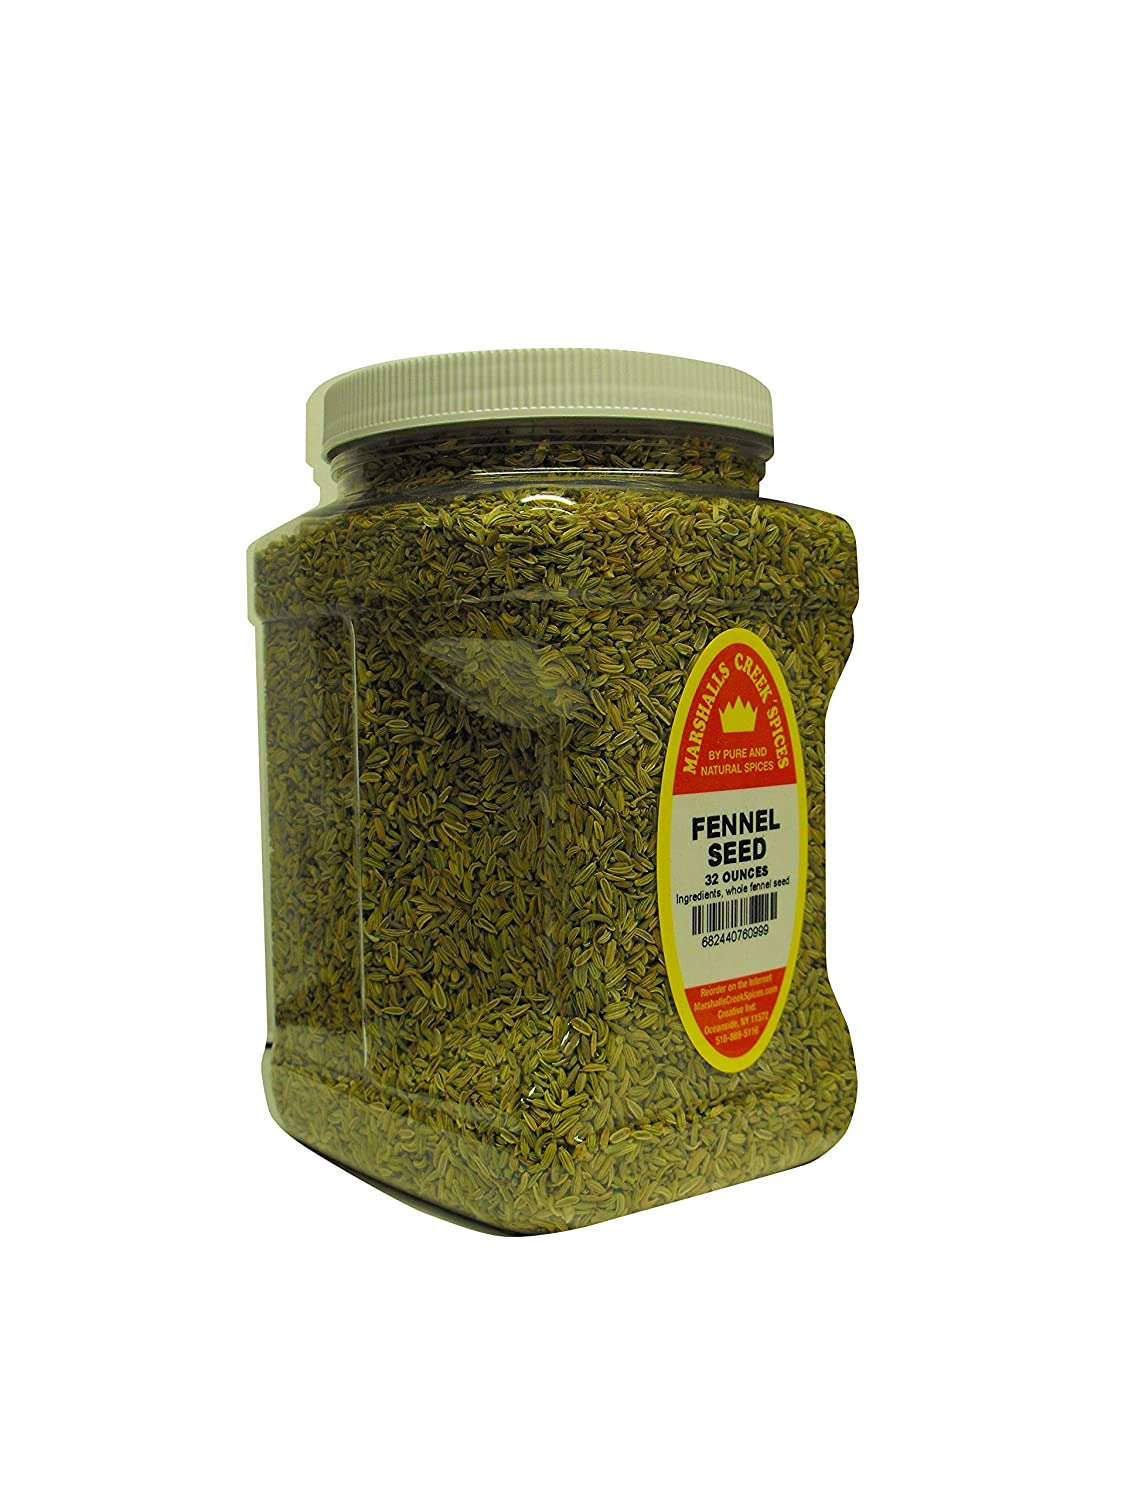 Family Size Marshalls OFFicial Creek Spices Ounces Whole Cheap mail order sales Seed Fennel 28